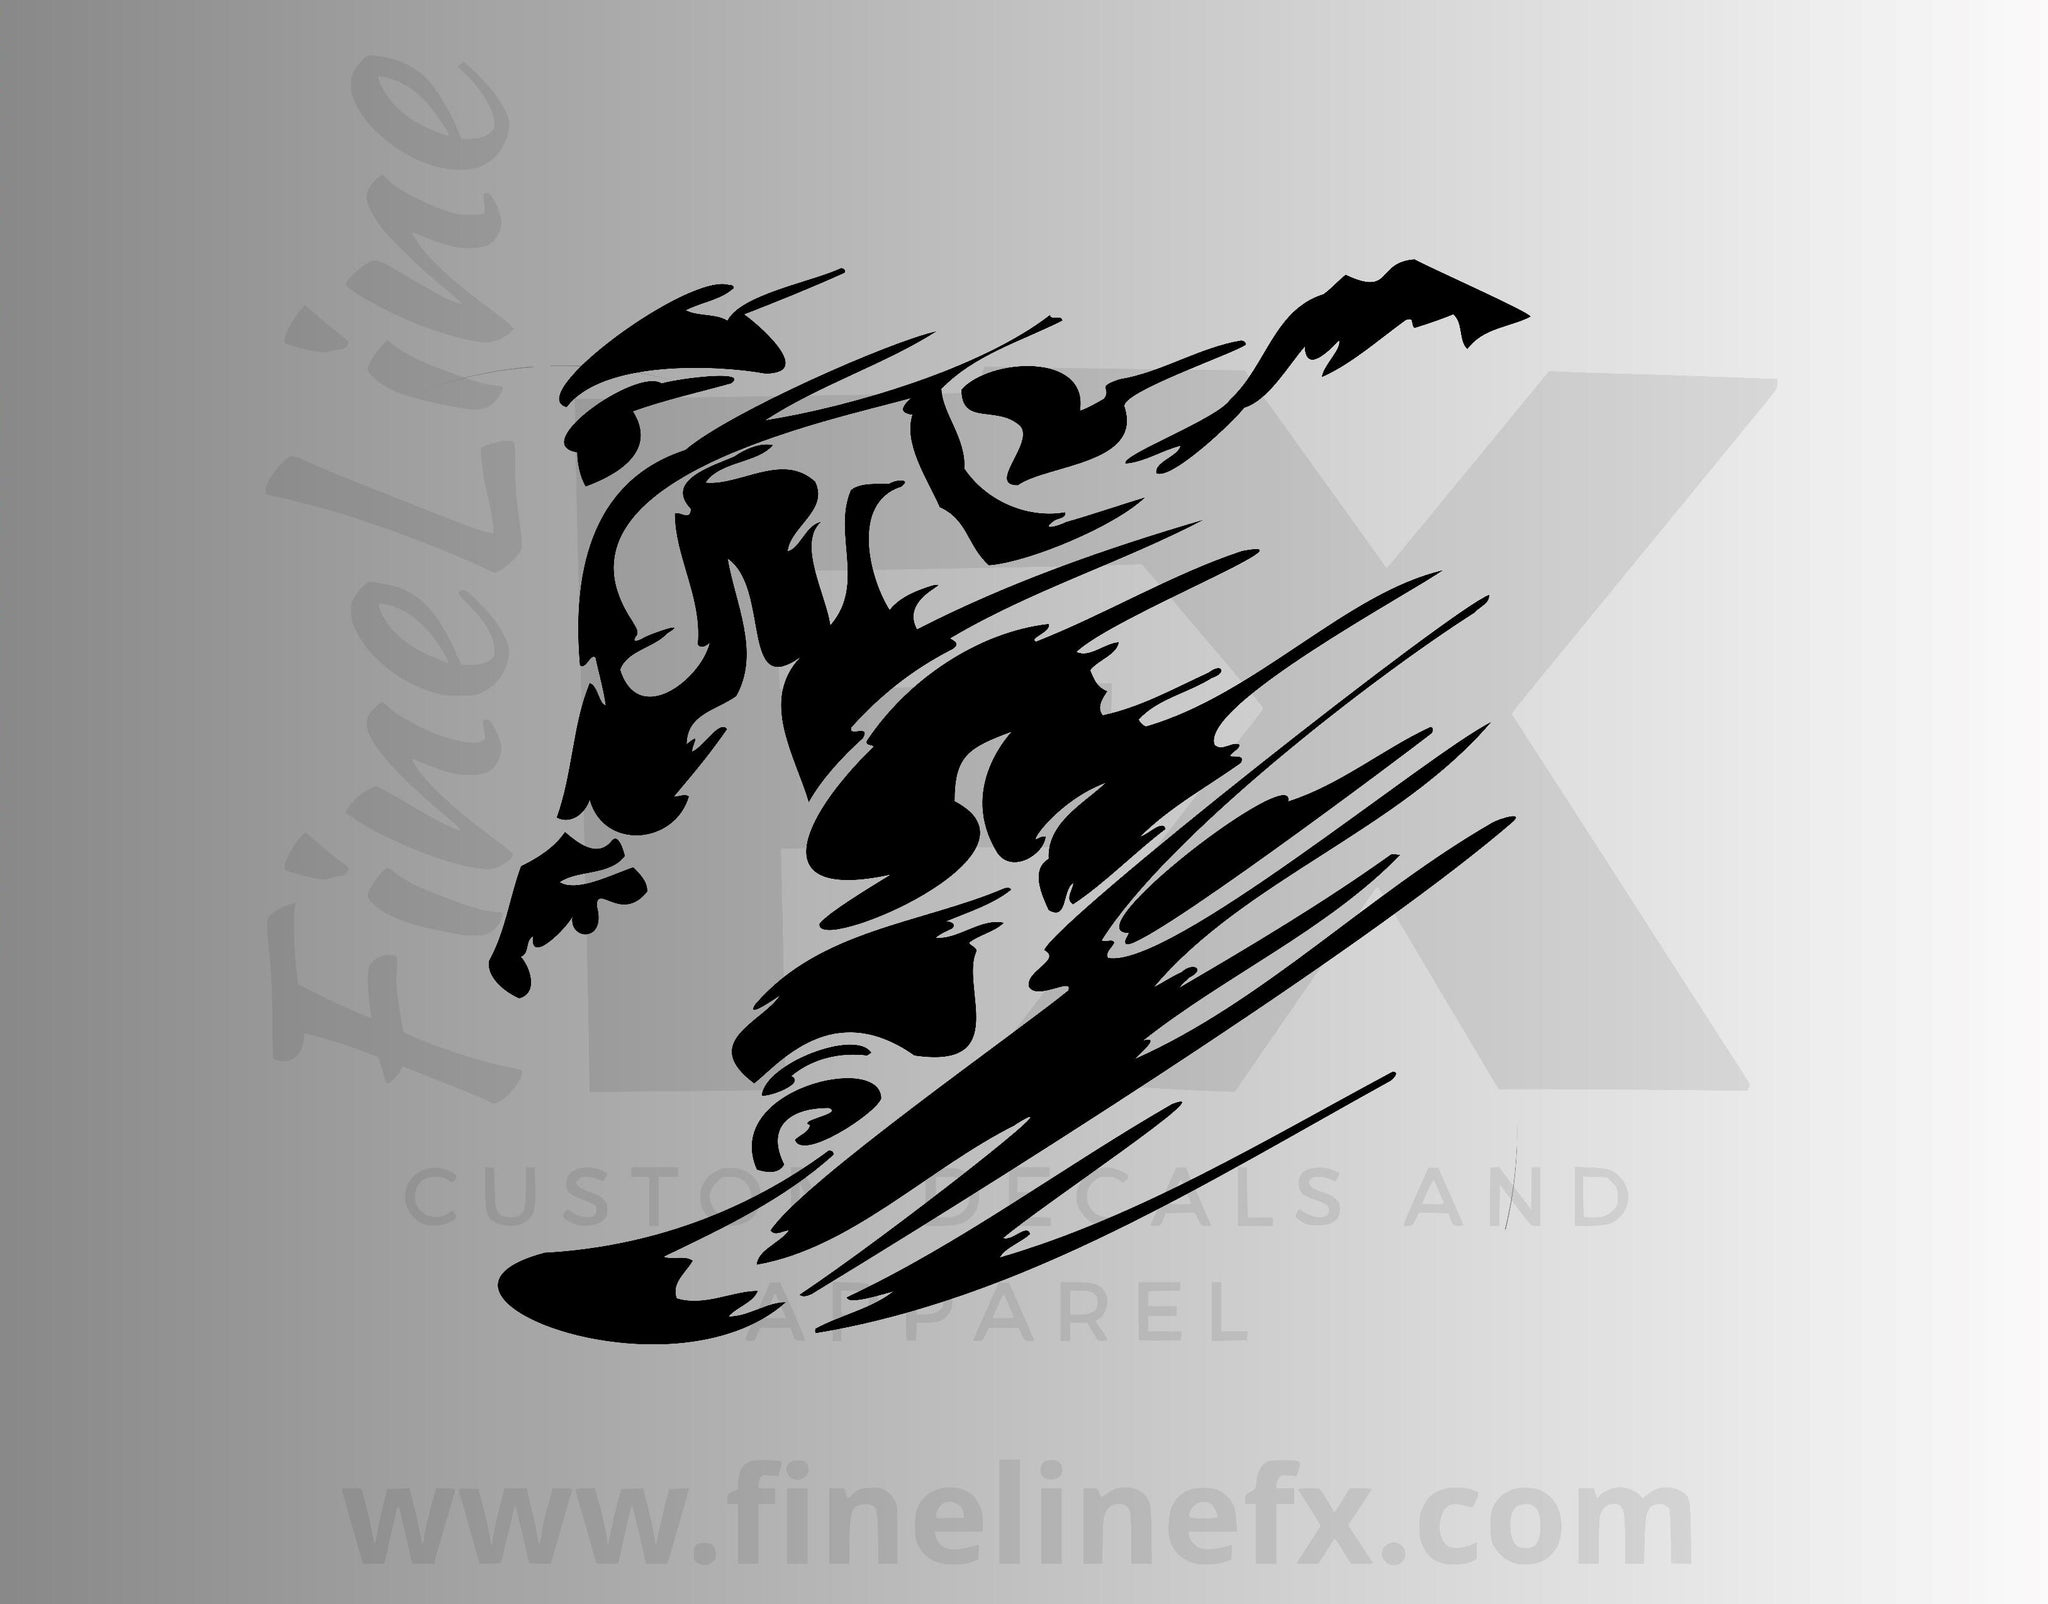 Snowboarding Extreme Sports Vinyl Decal Sticker